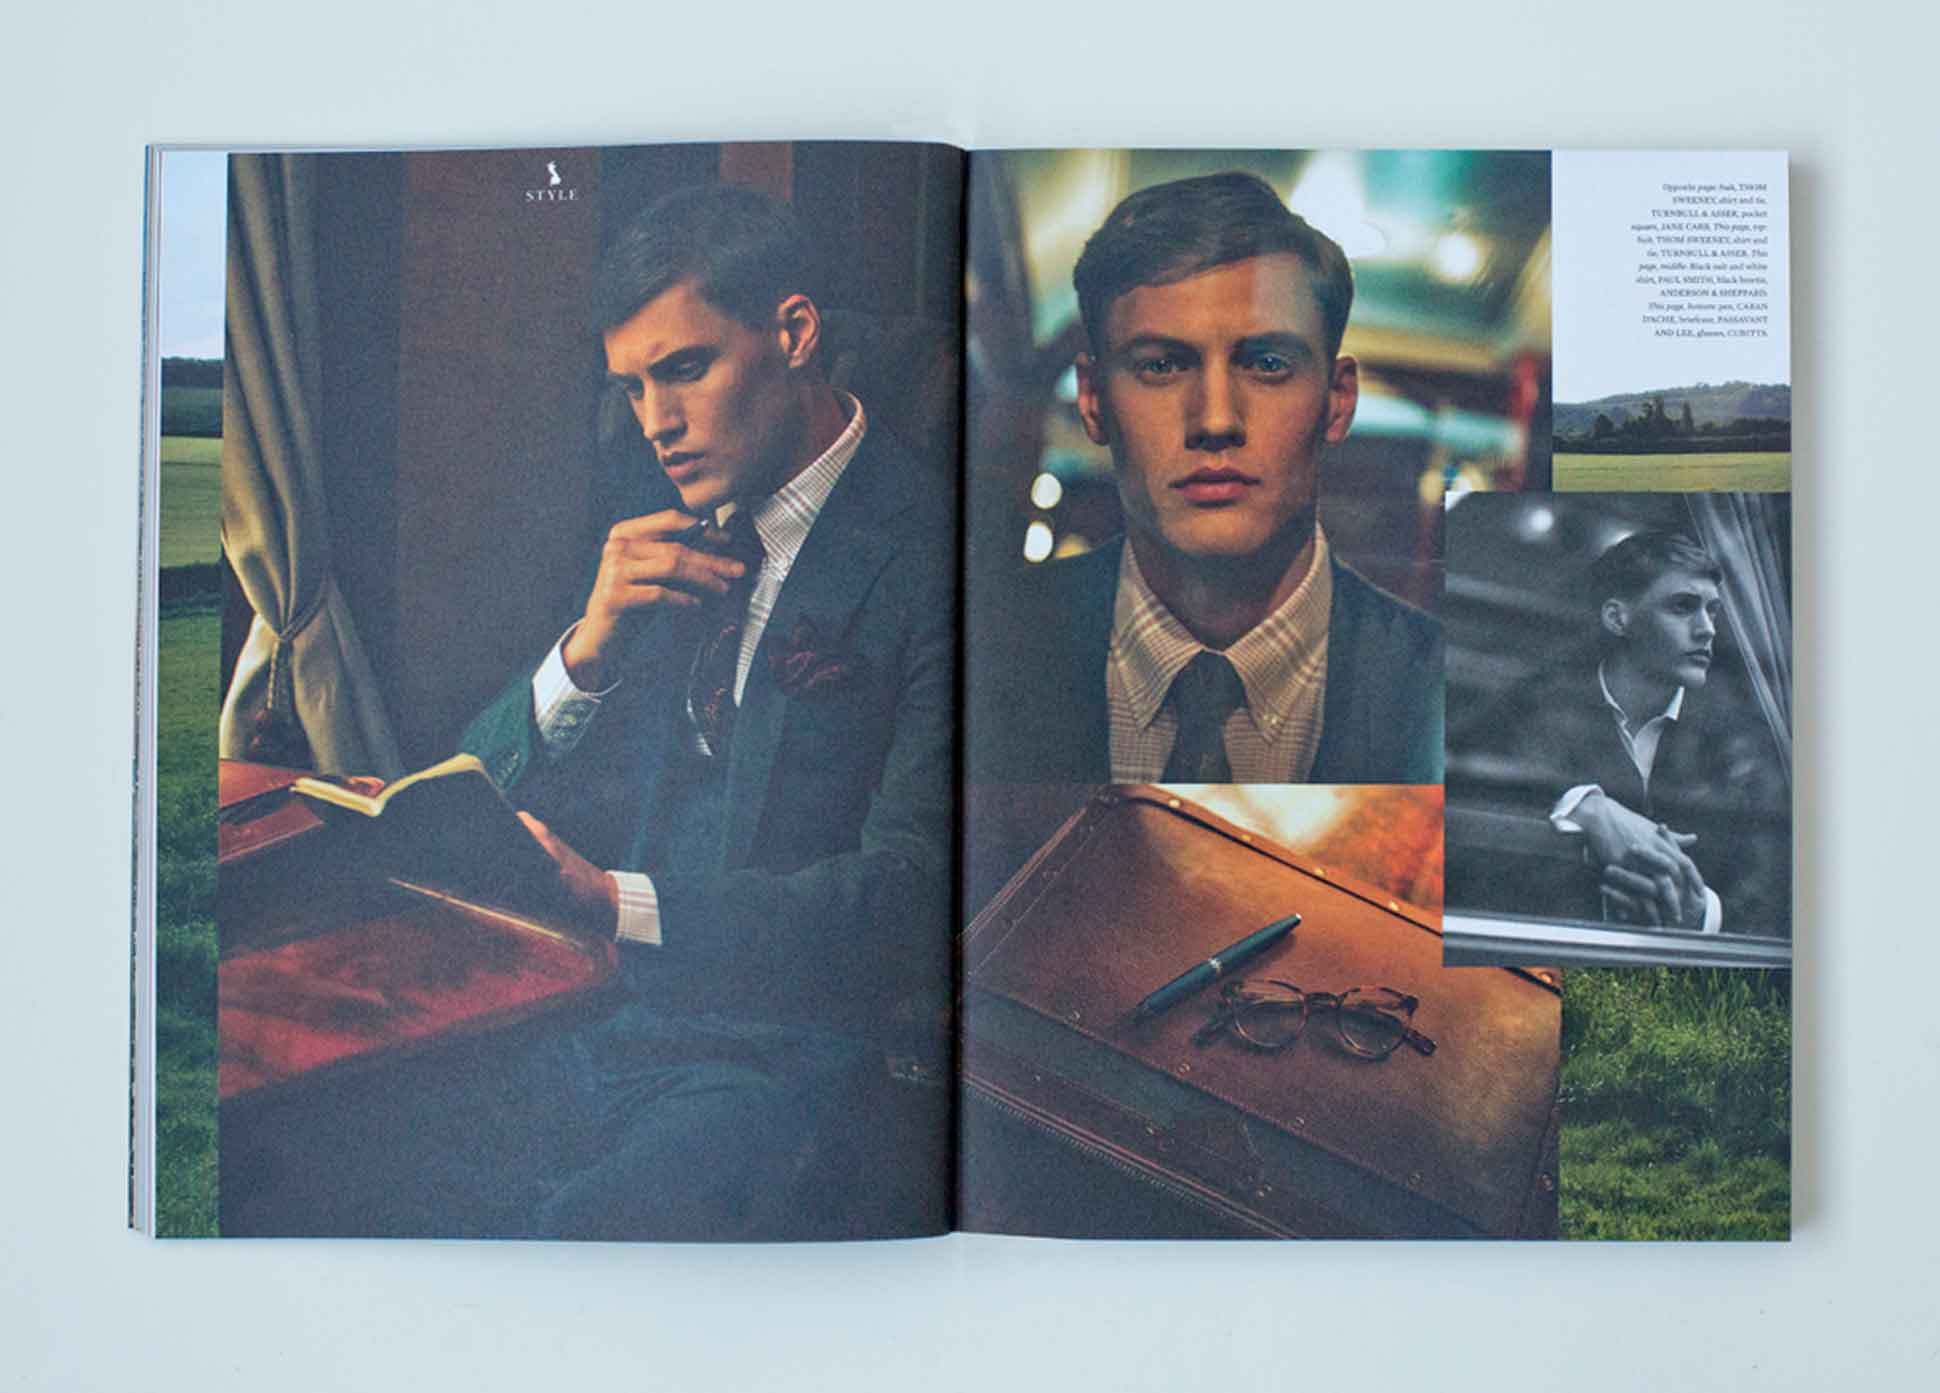 OutThere/Travel Great British Issue preview - British Brands Fashion Shoot on Belmond British Pullman